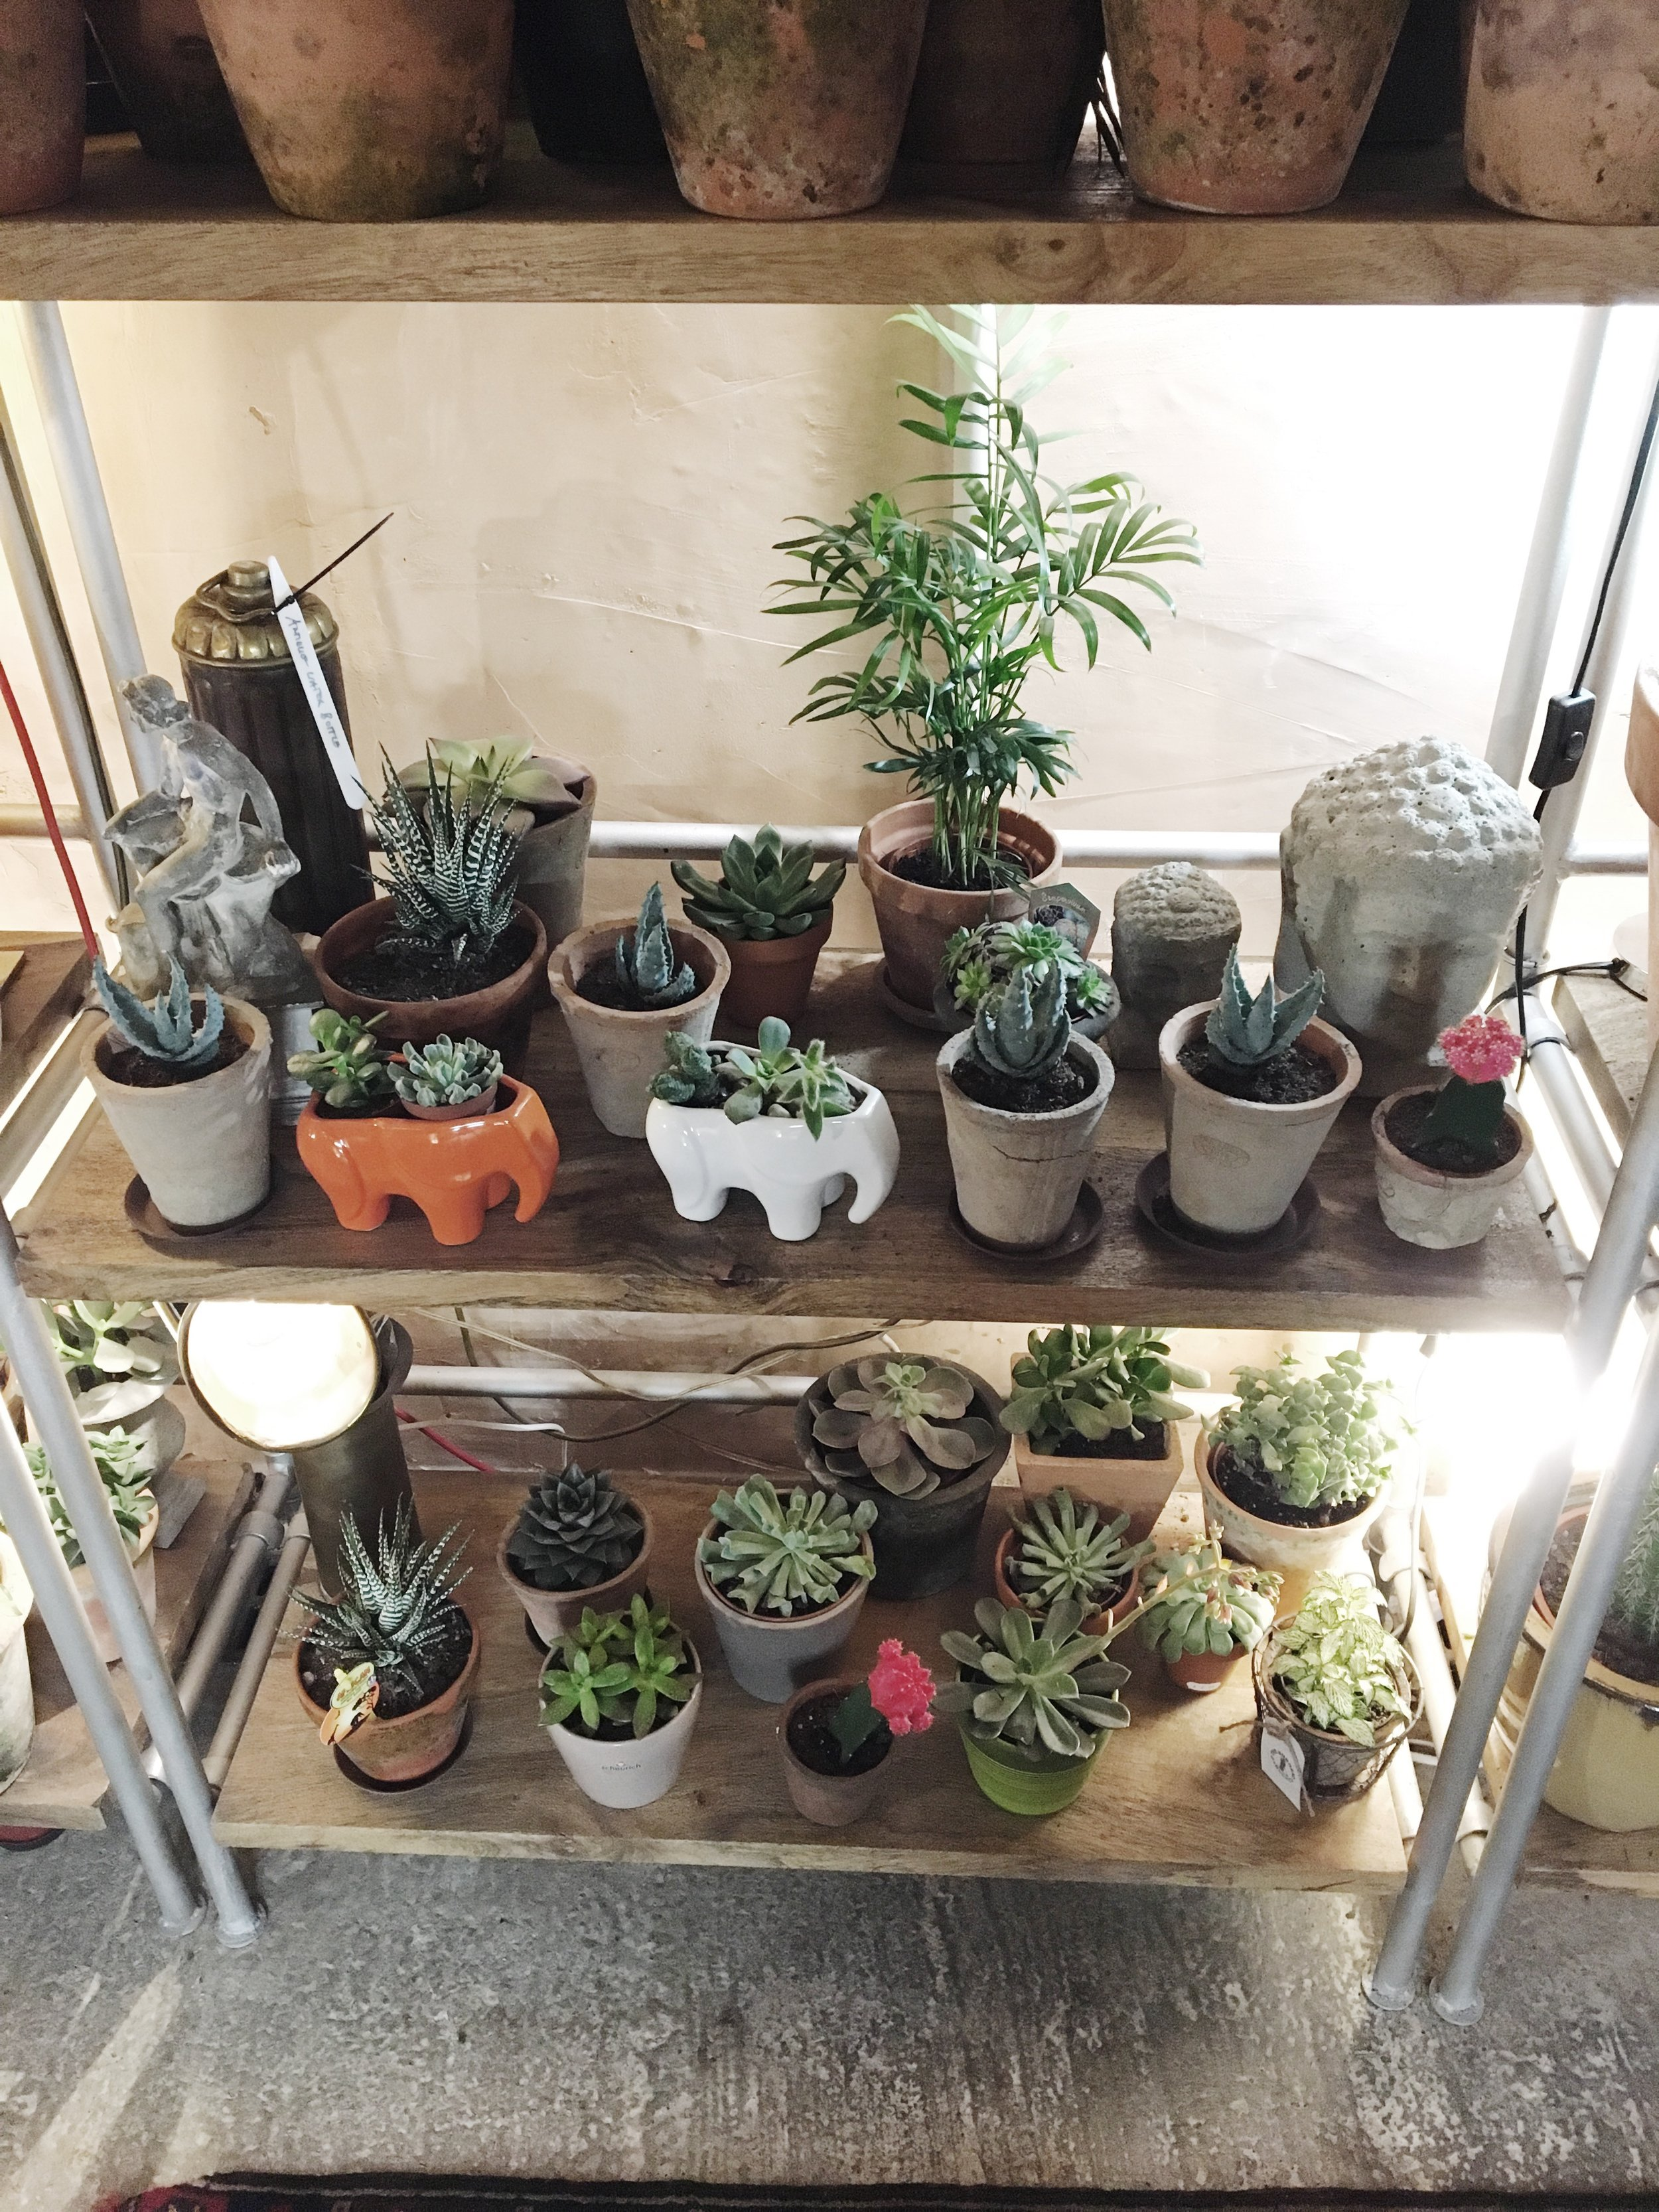 My favourite shelves - the cacti and succulents